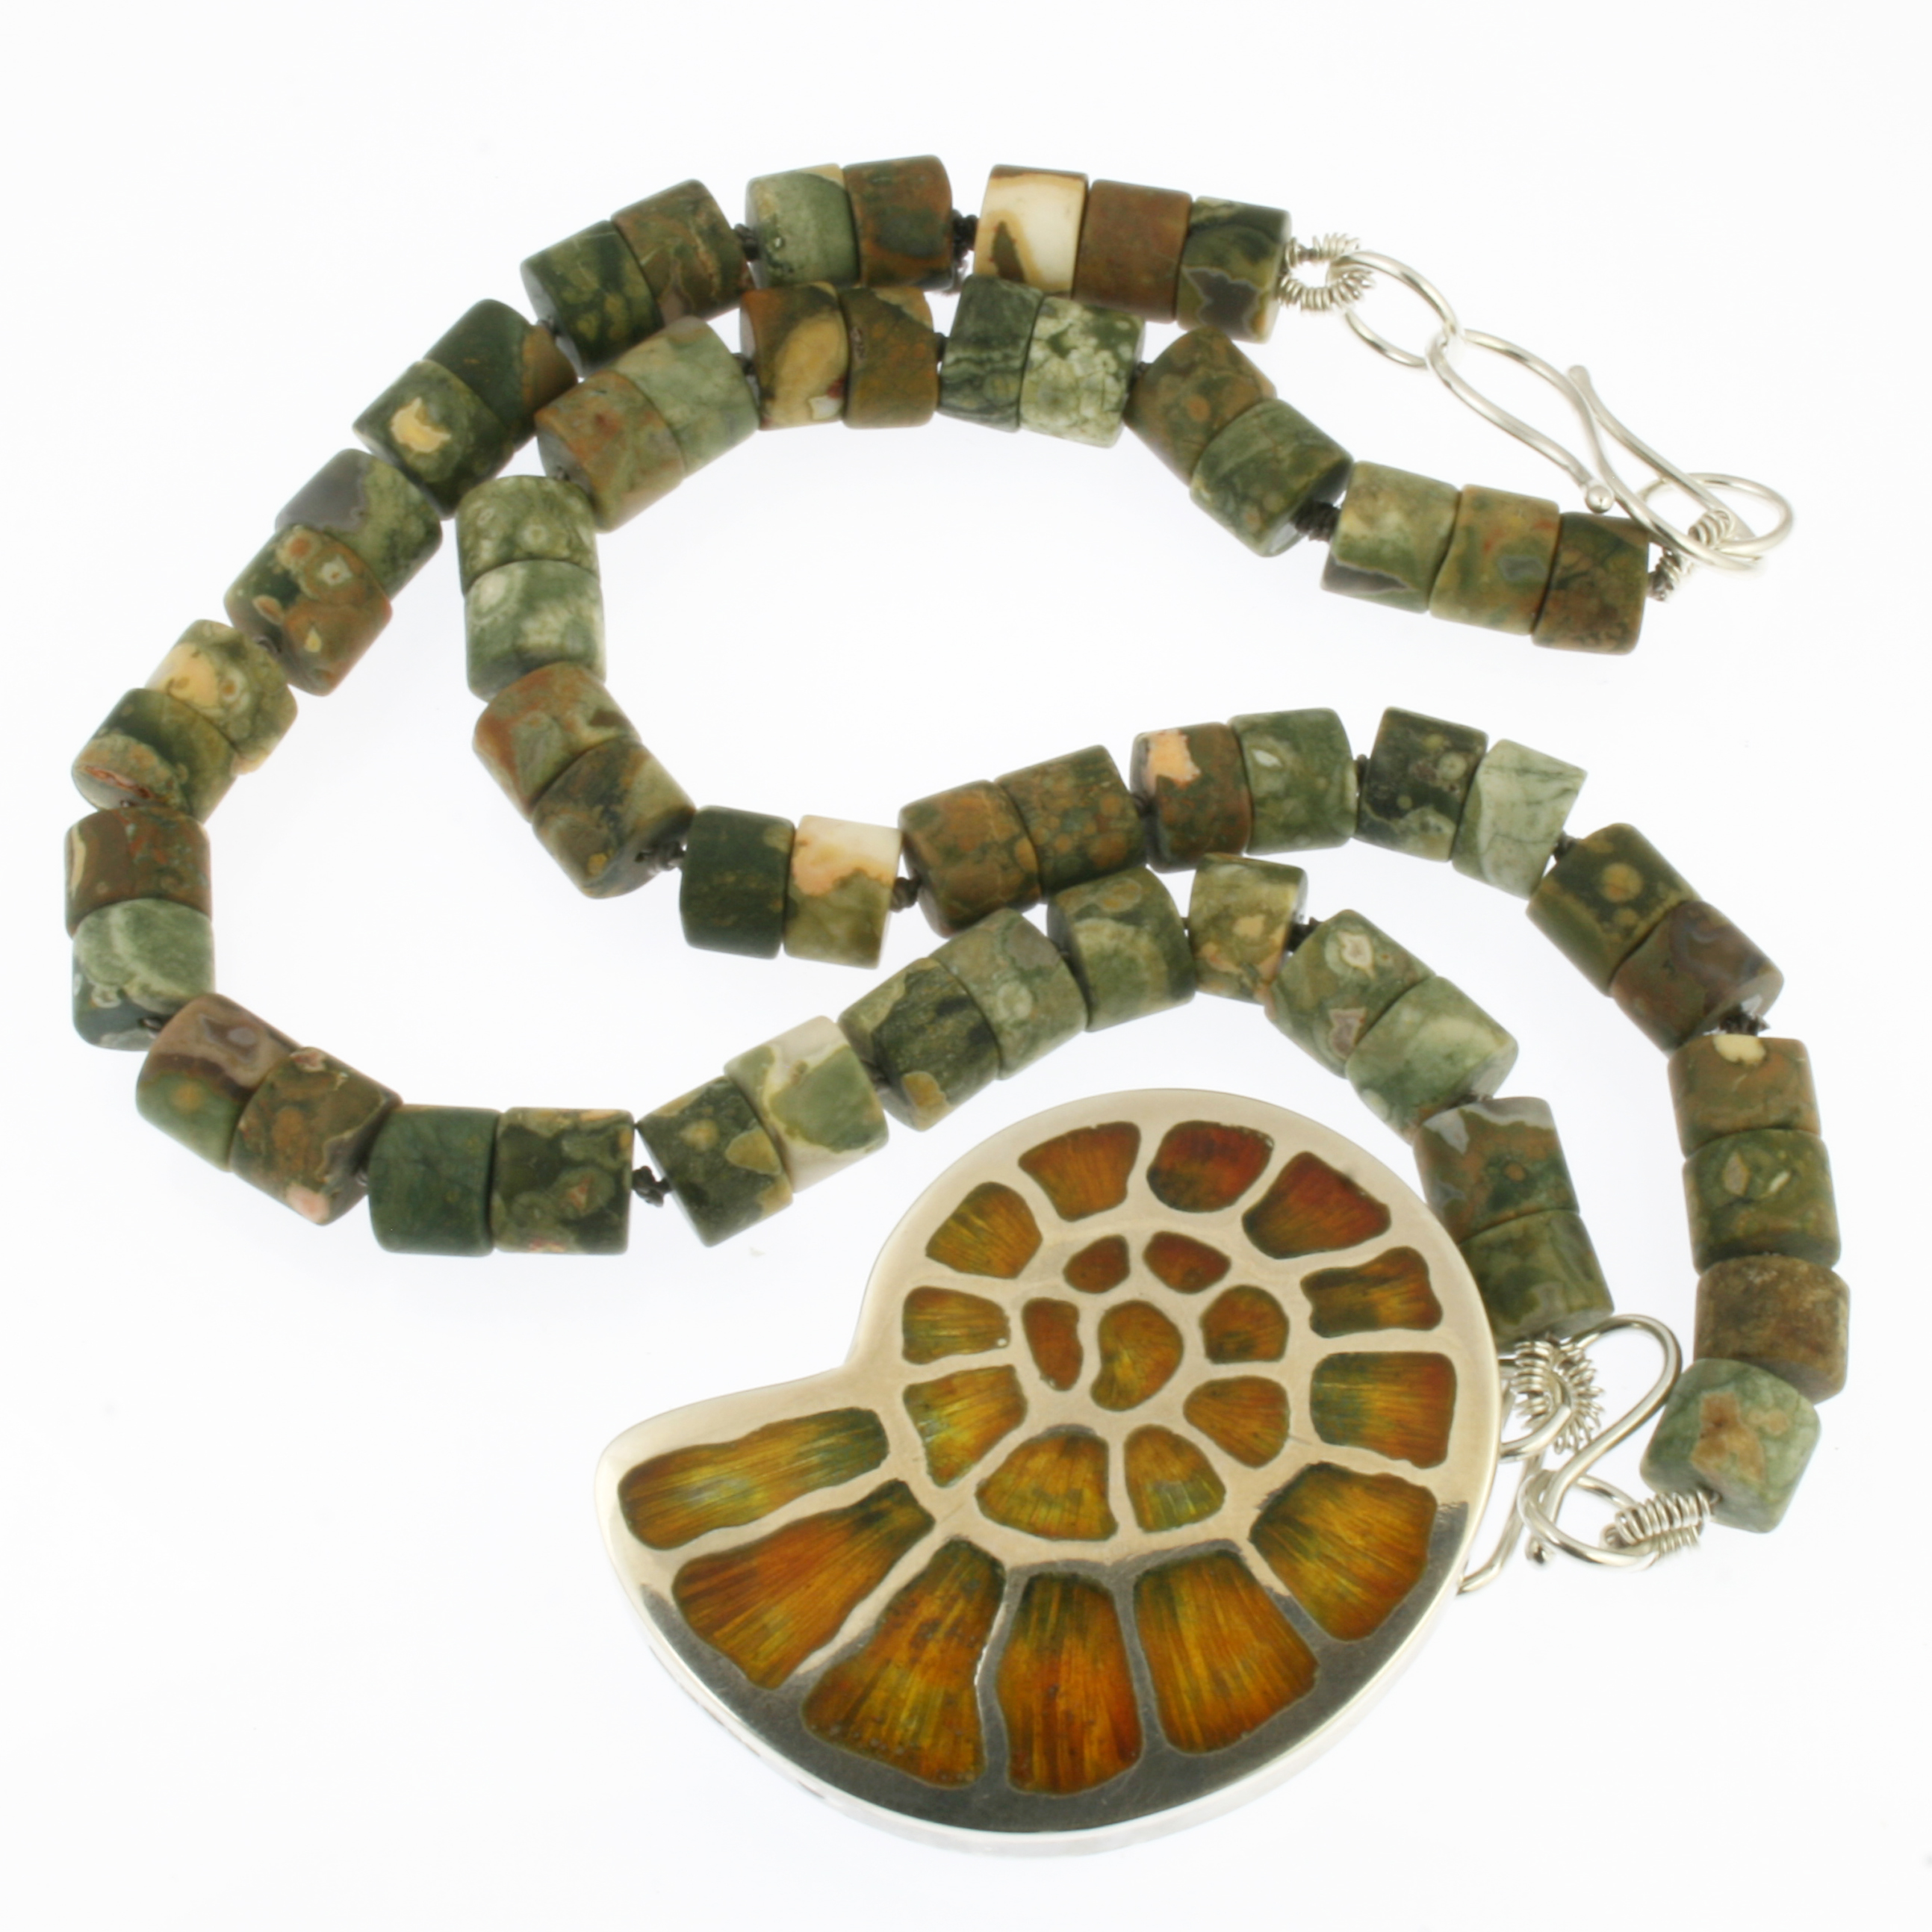 Ammonite-Fossil-necklace-with-Rhyolite-beads